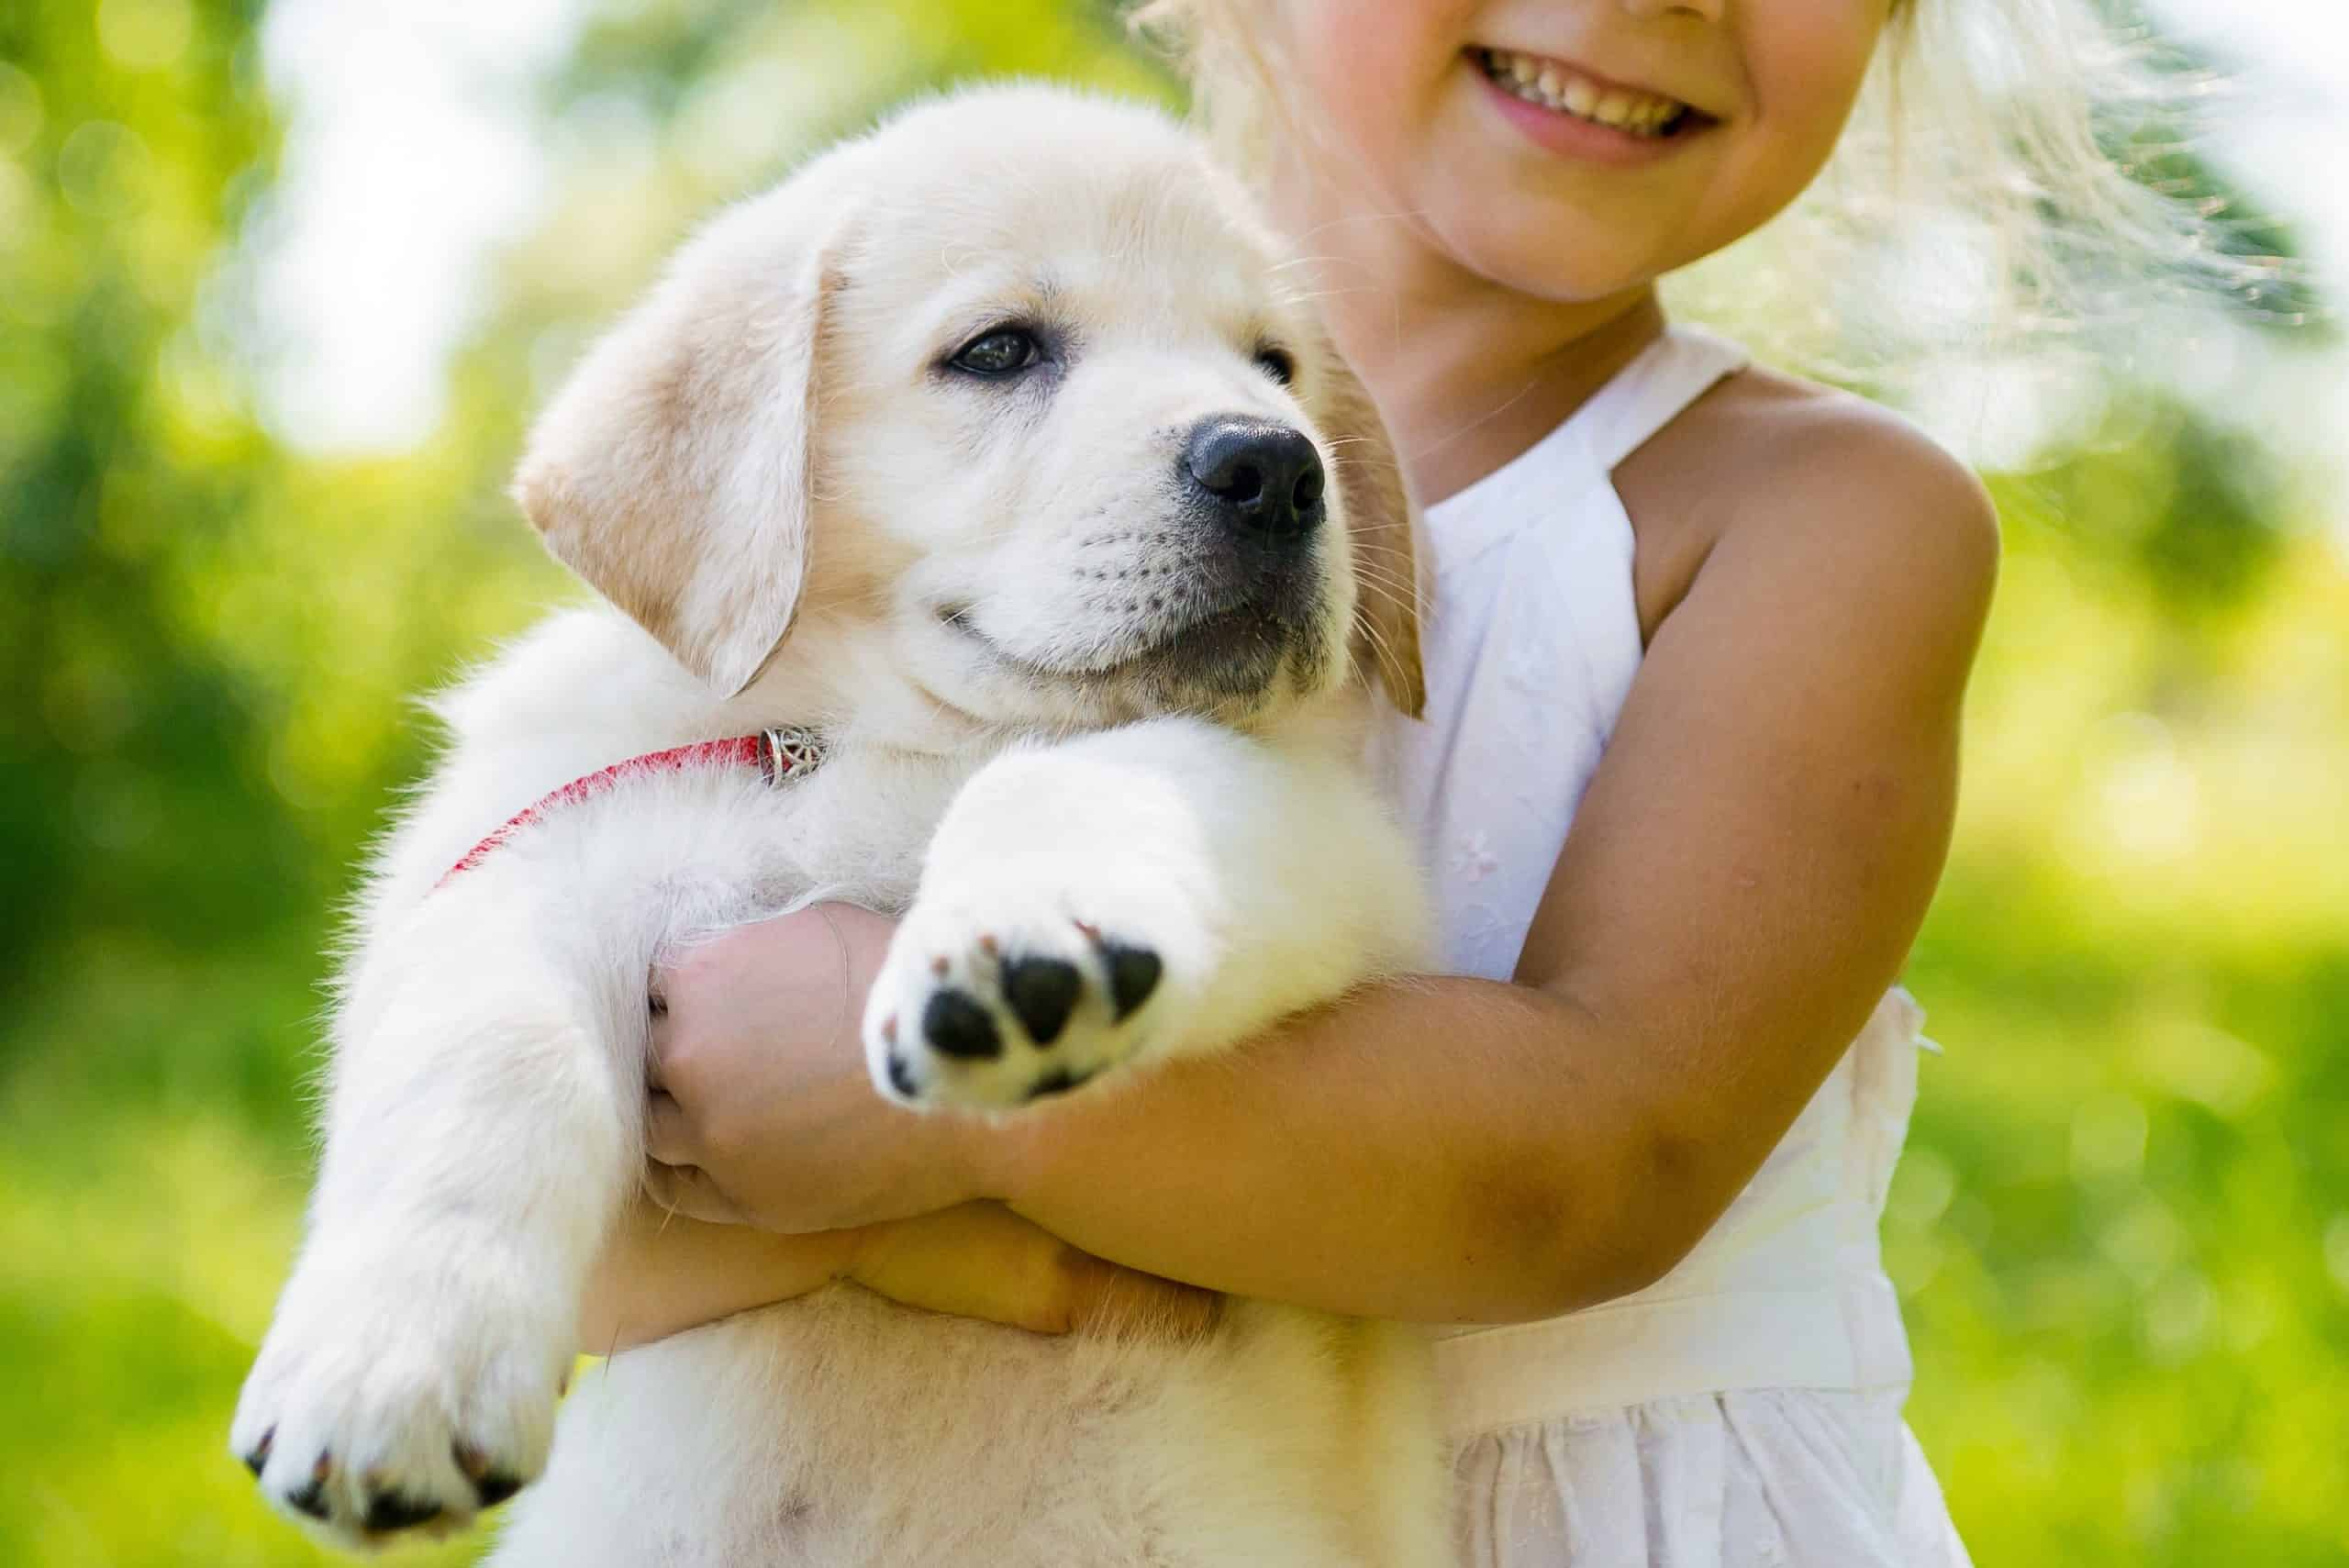 Little girl holds yellow Labrador retriever puppy. Before getting a dog, ask yourself if your family, especially one with young children, is ready for a pet.